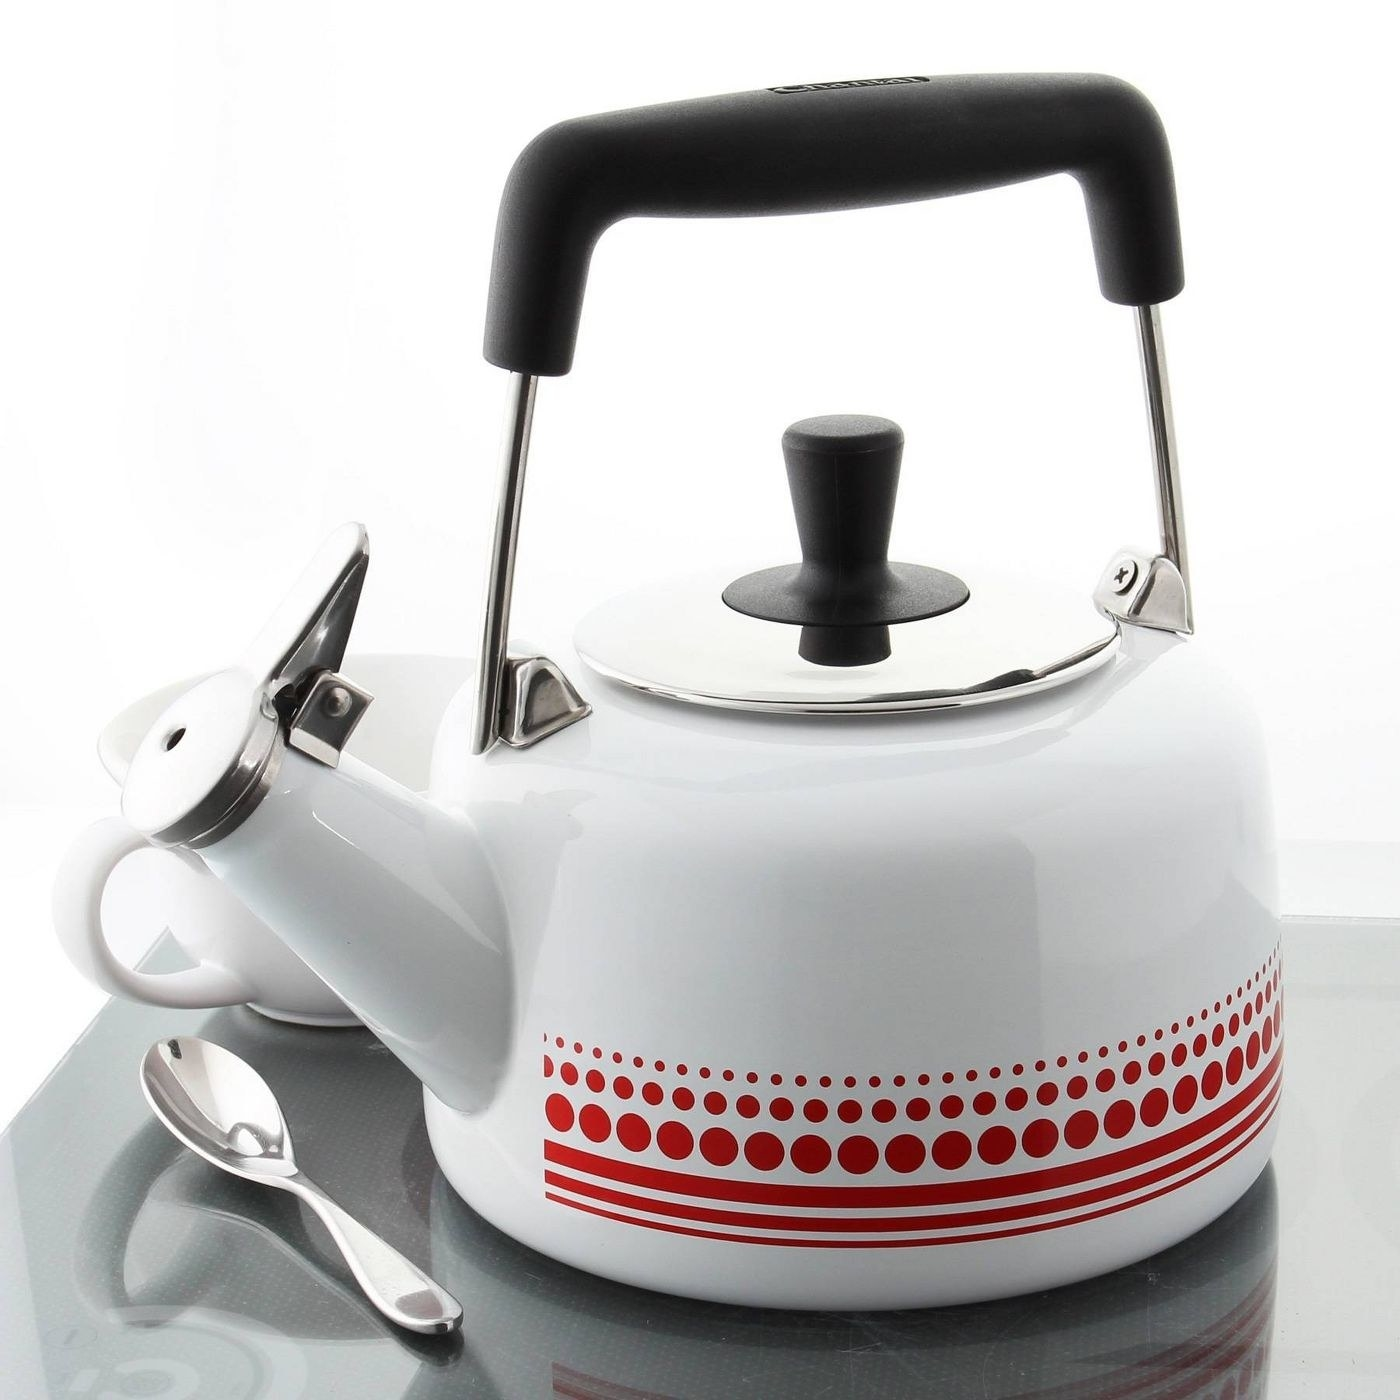 white tea kettle with a red decal on it